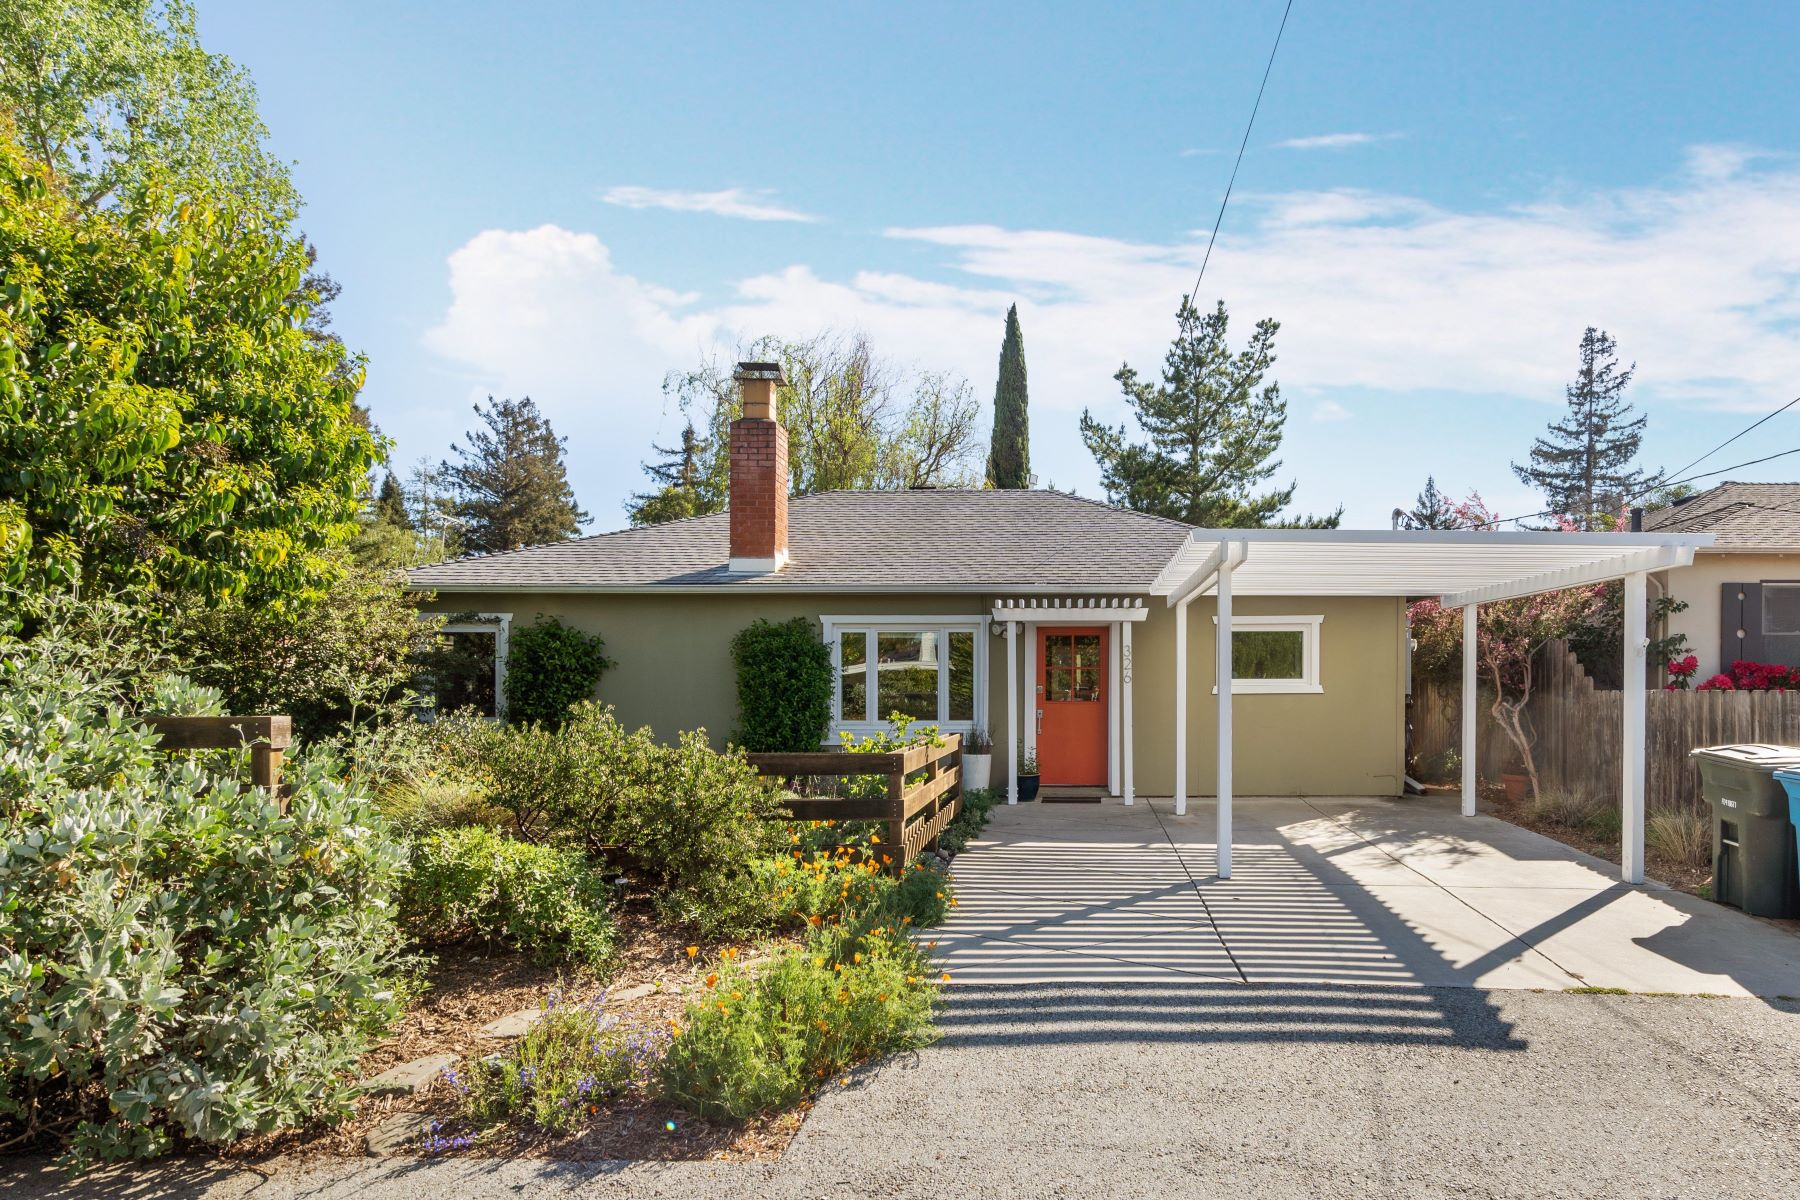 Single Family Homes for Active at California Bungalow + Native Garden 326 Belmont Ave Redwood City, California 94061 United States